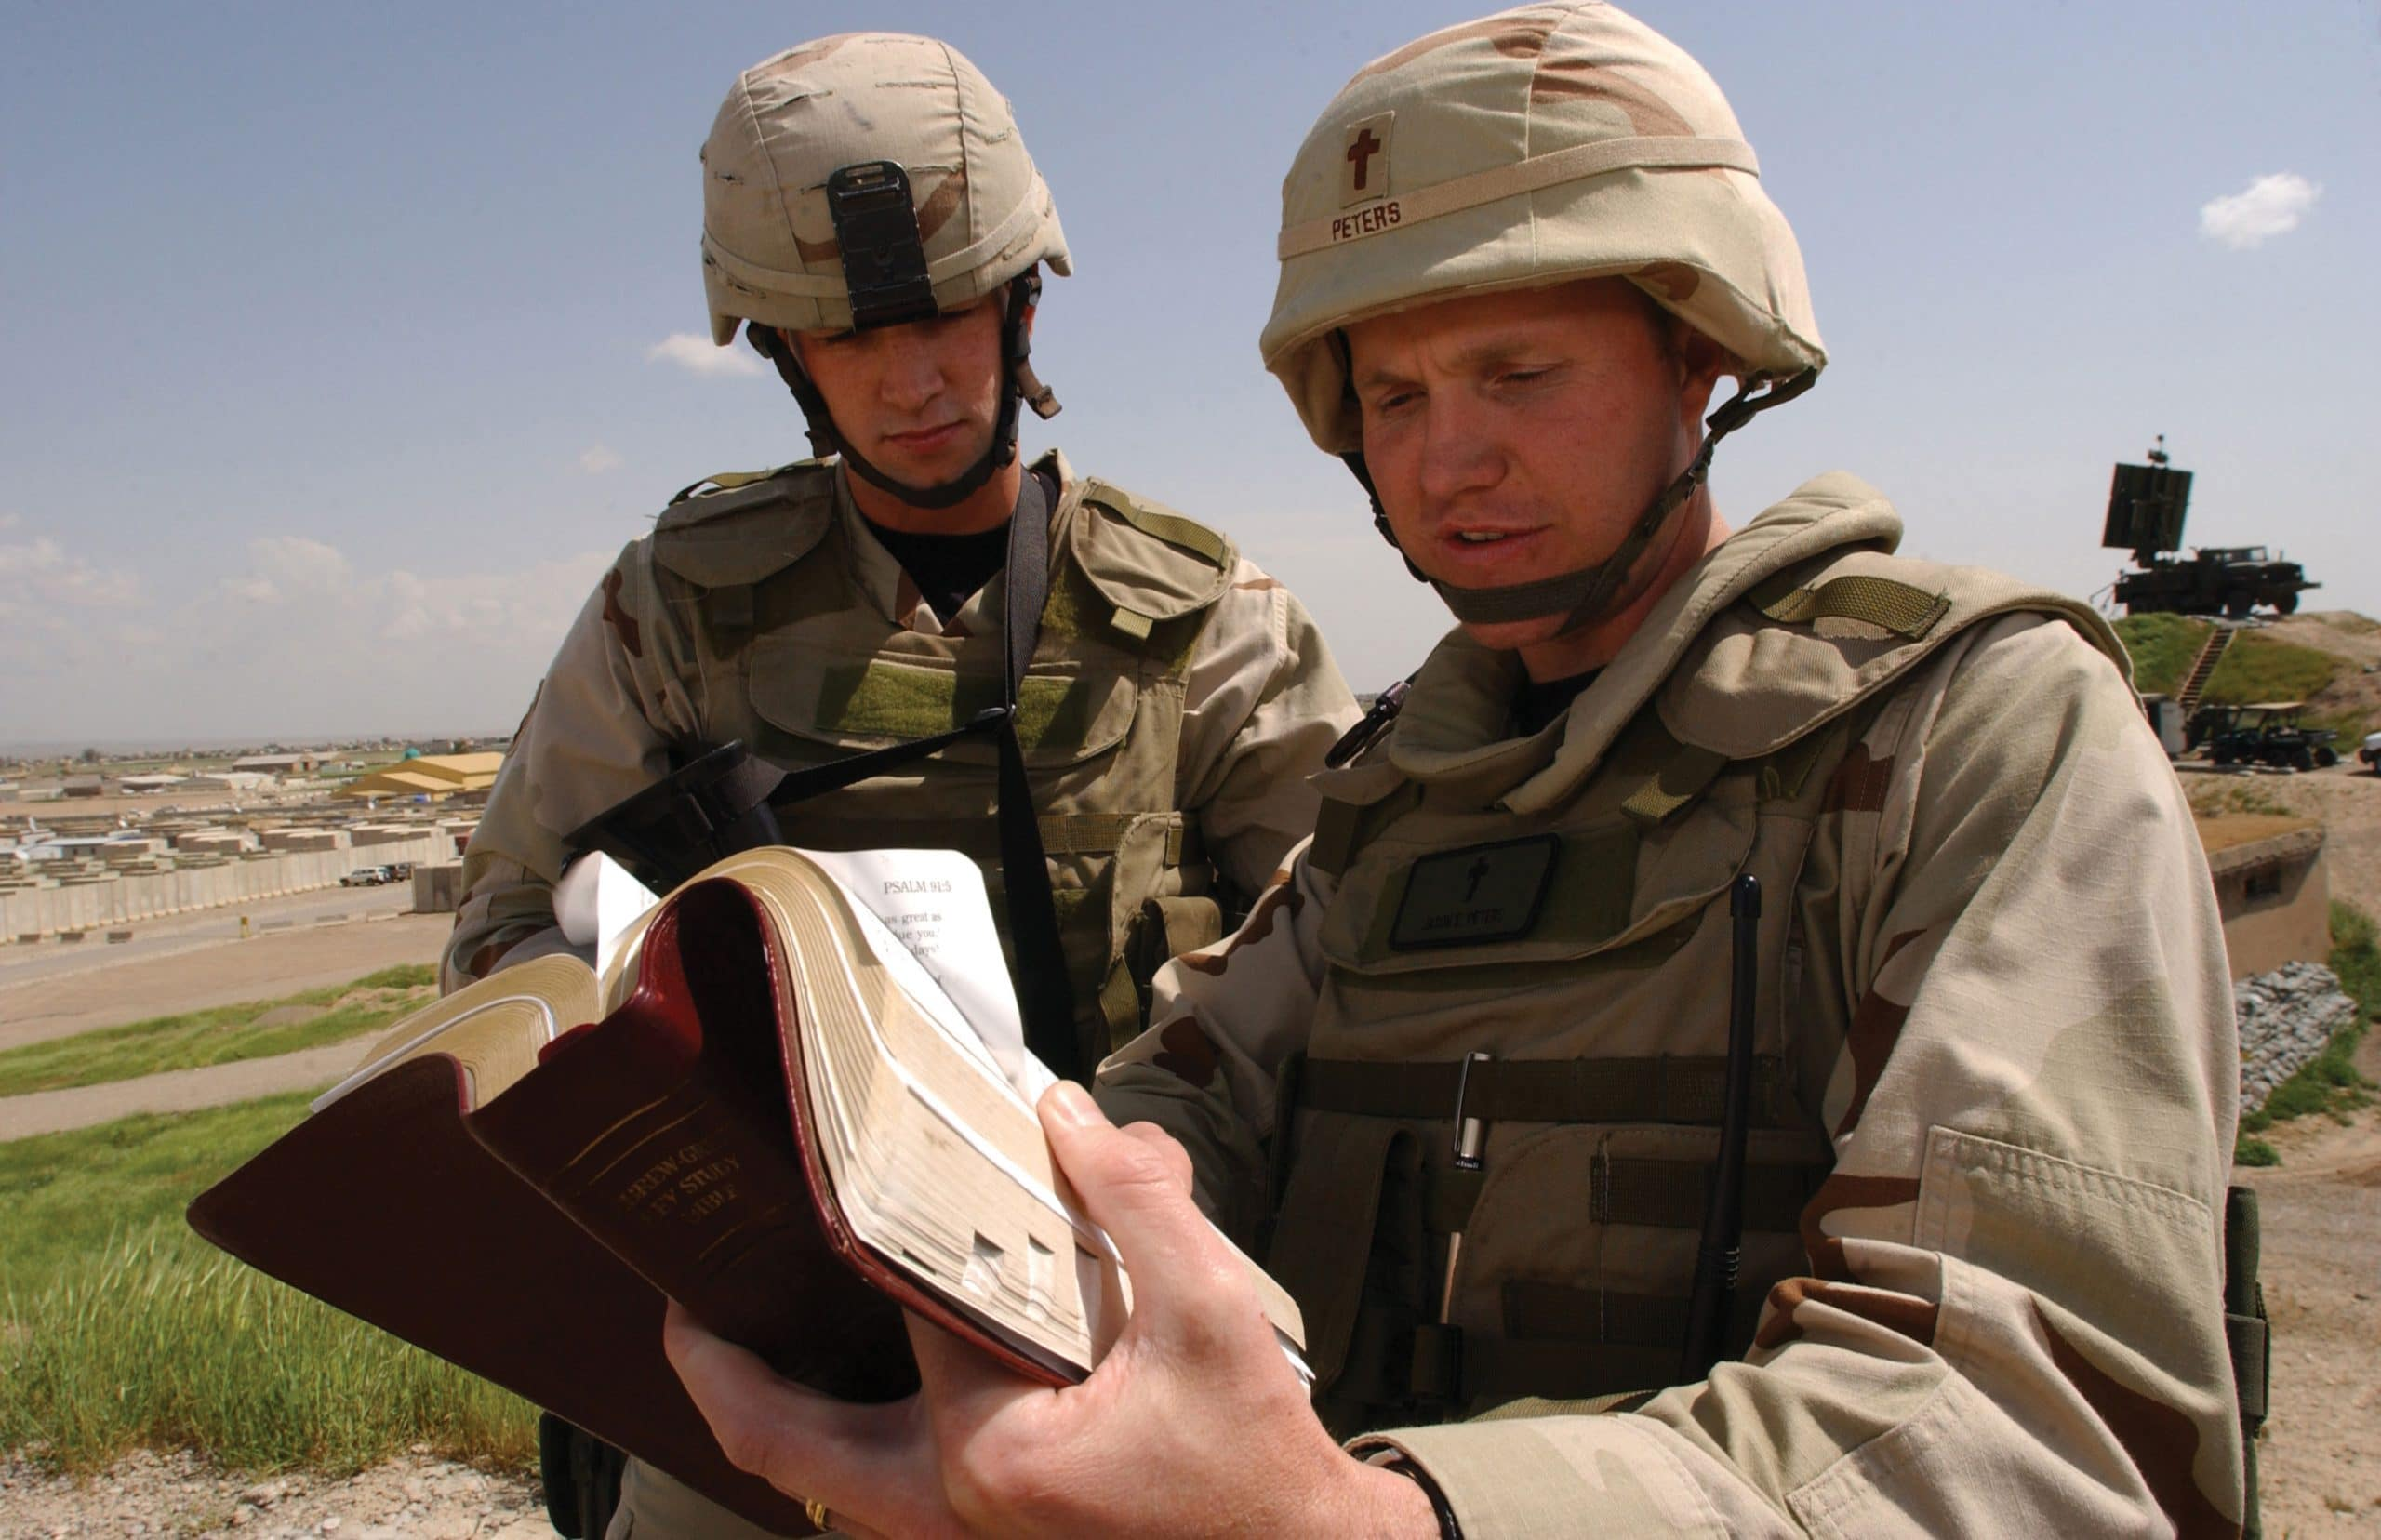 Chaplain Jason Peters, right, values the partnership of The Navigators in providing spiritual support to U.S. troops.